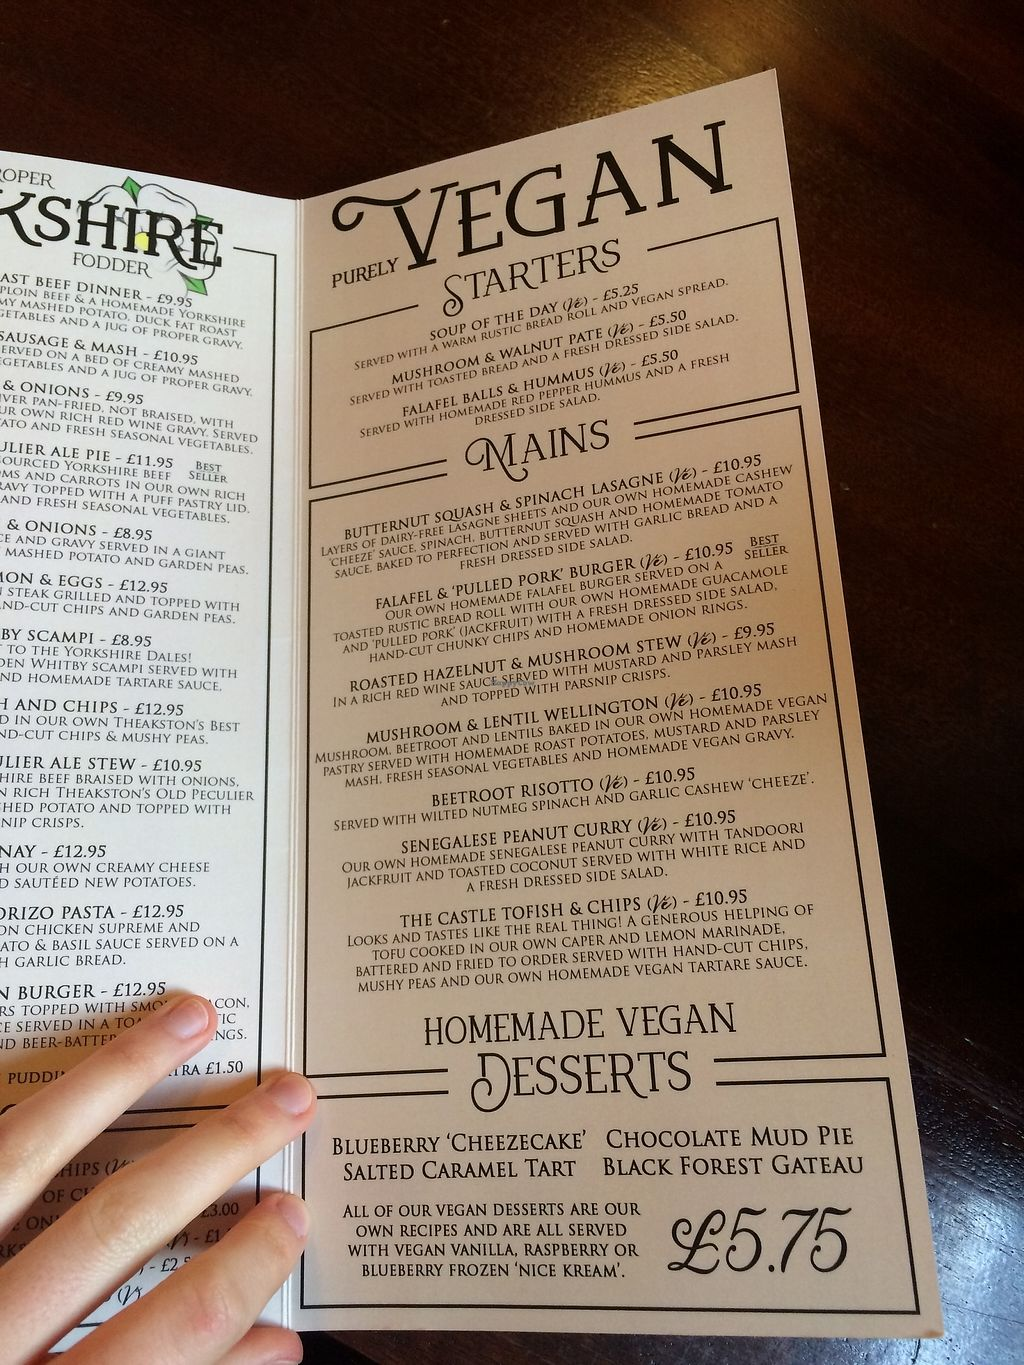 """Photo of The Castle Inn   by <a href=""""/members/profile/Hoggy"""">Hoggy</a> <br/>The vegan menu as of June 2017 (may differ) <br/> June 20, 2017  - <a href='/contact/abuse/image/88054/271523'>Report</a>"""